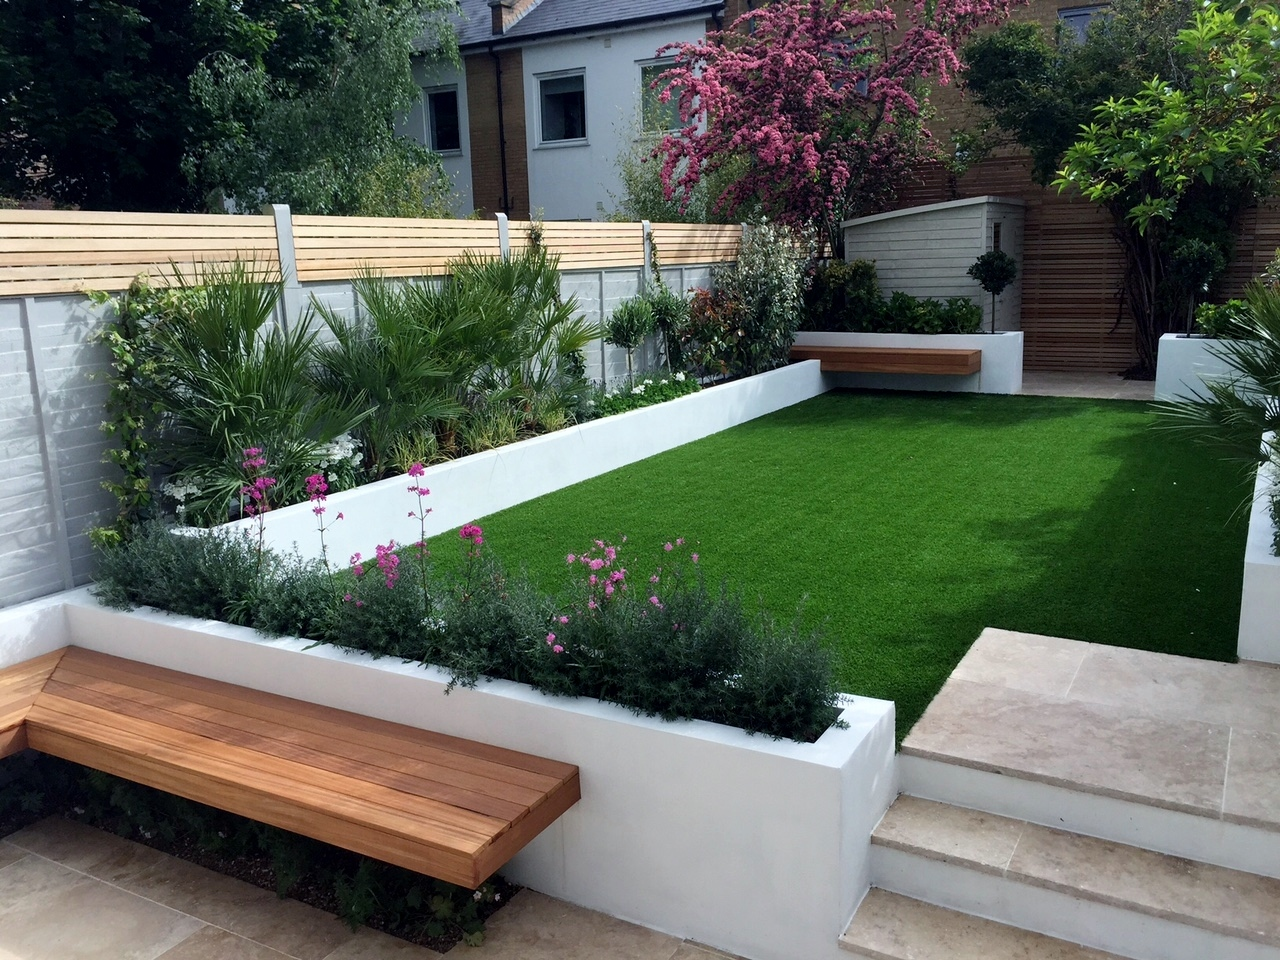 garden design ideas london photo - 5